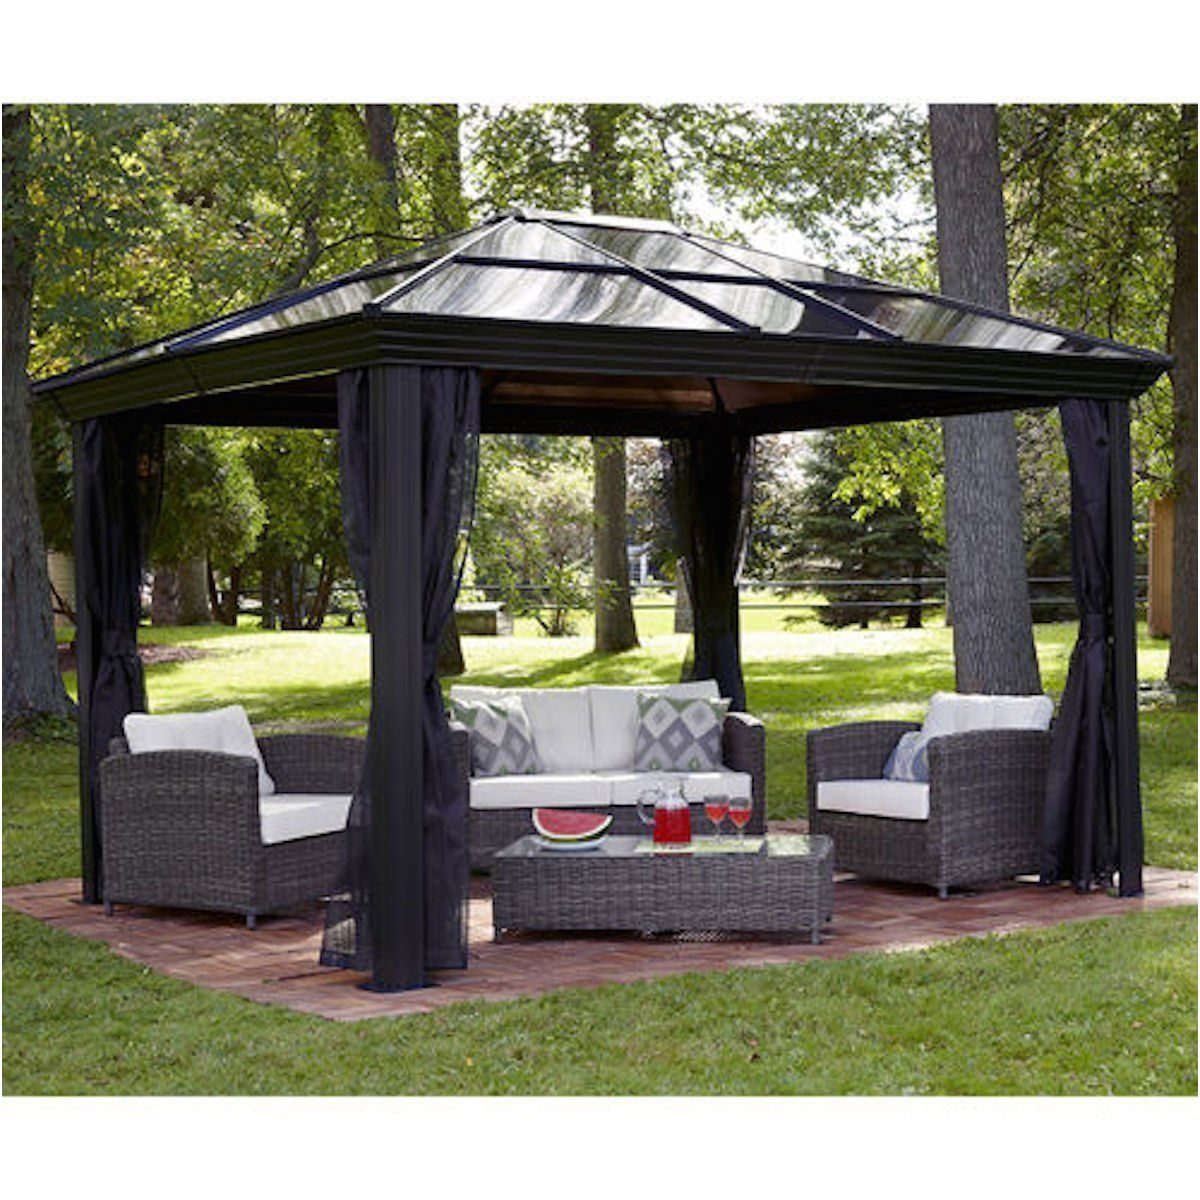 Temporary Flooring Ideas For Portable Gazebos Inspirational Gazebo Canopy Pergola This 10 X 12 Hardtop Gazebo Tent Backyard Gazebo Gazebo Tent Backyard Canopy